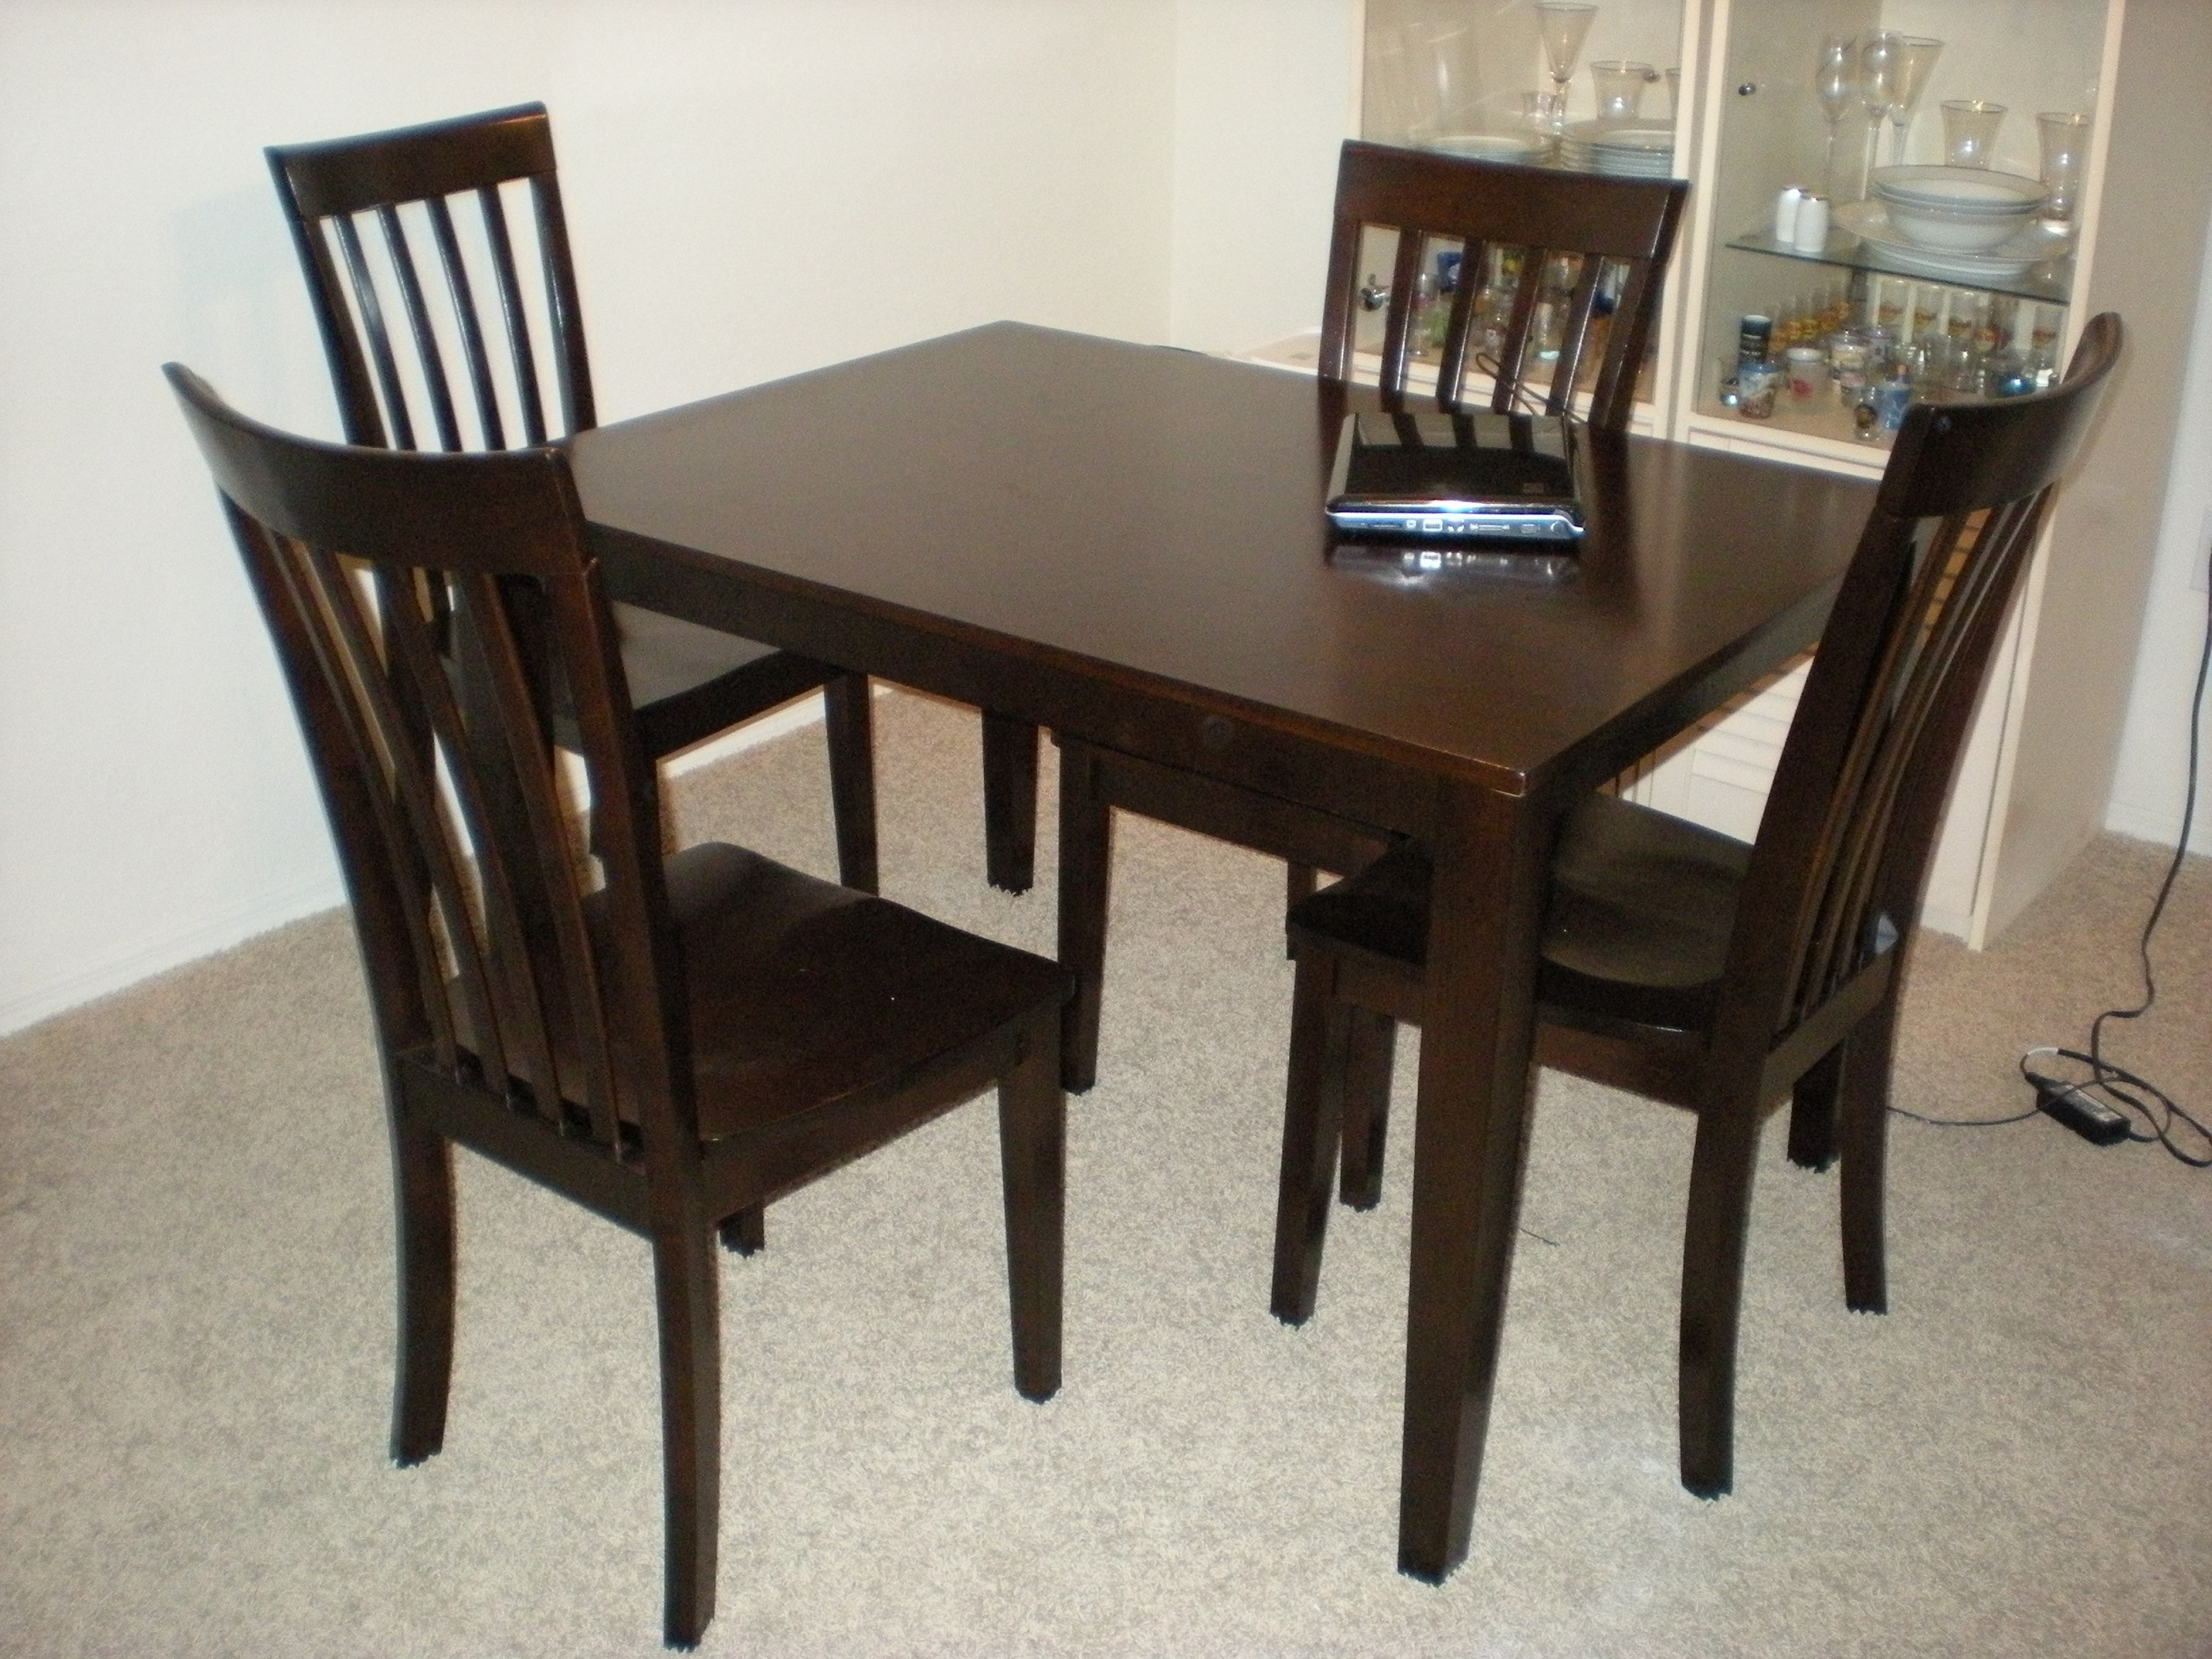 Latest Dining Room: Surprising Wooden Dining Room Furniture, Wood Table Set In Dark Wood Dining Tables And Chairs (View 5 of 25)